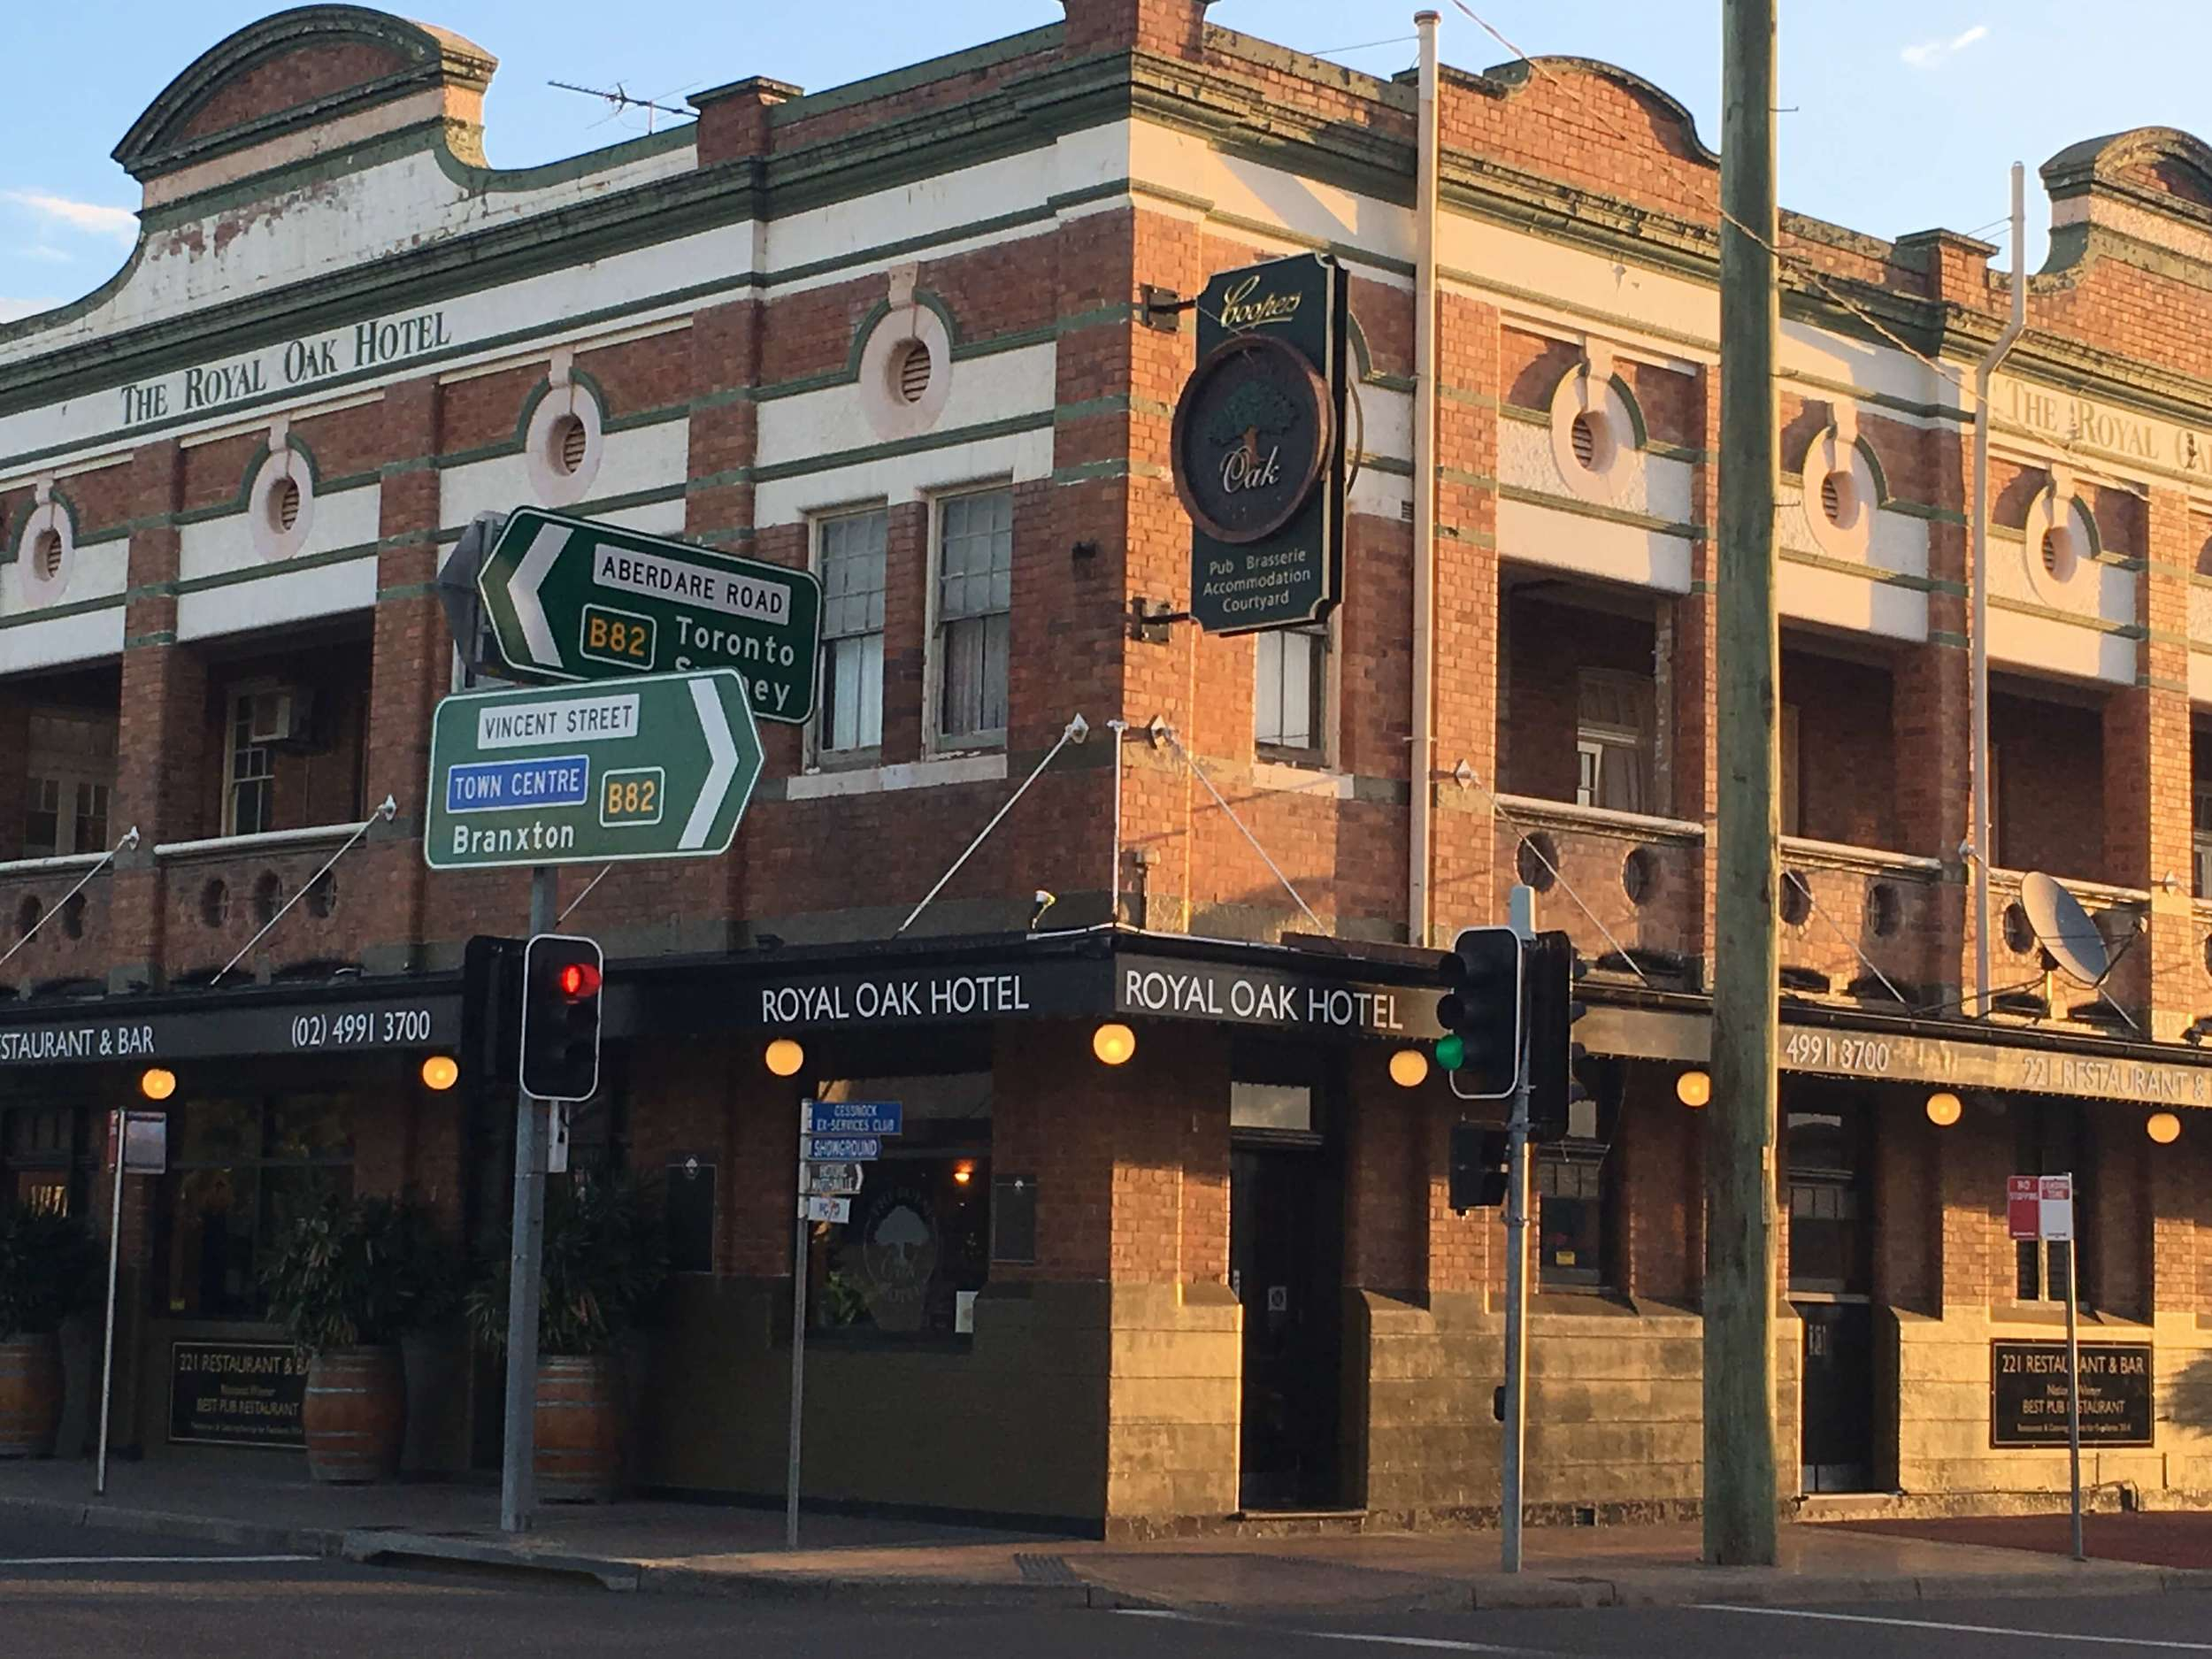 CESSNOCK COMMERCIAL PRECINCT PROJECT: DCP AND PUBLIC DOMAIN PLAN COMMUNITY ENGAGEMENT  Cessnock City Council   Cred is developing and completing the community engagement strategy to  ...more